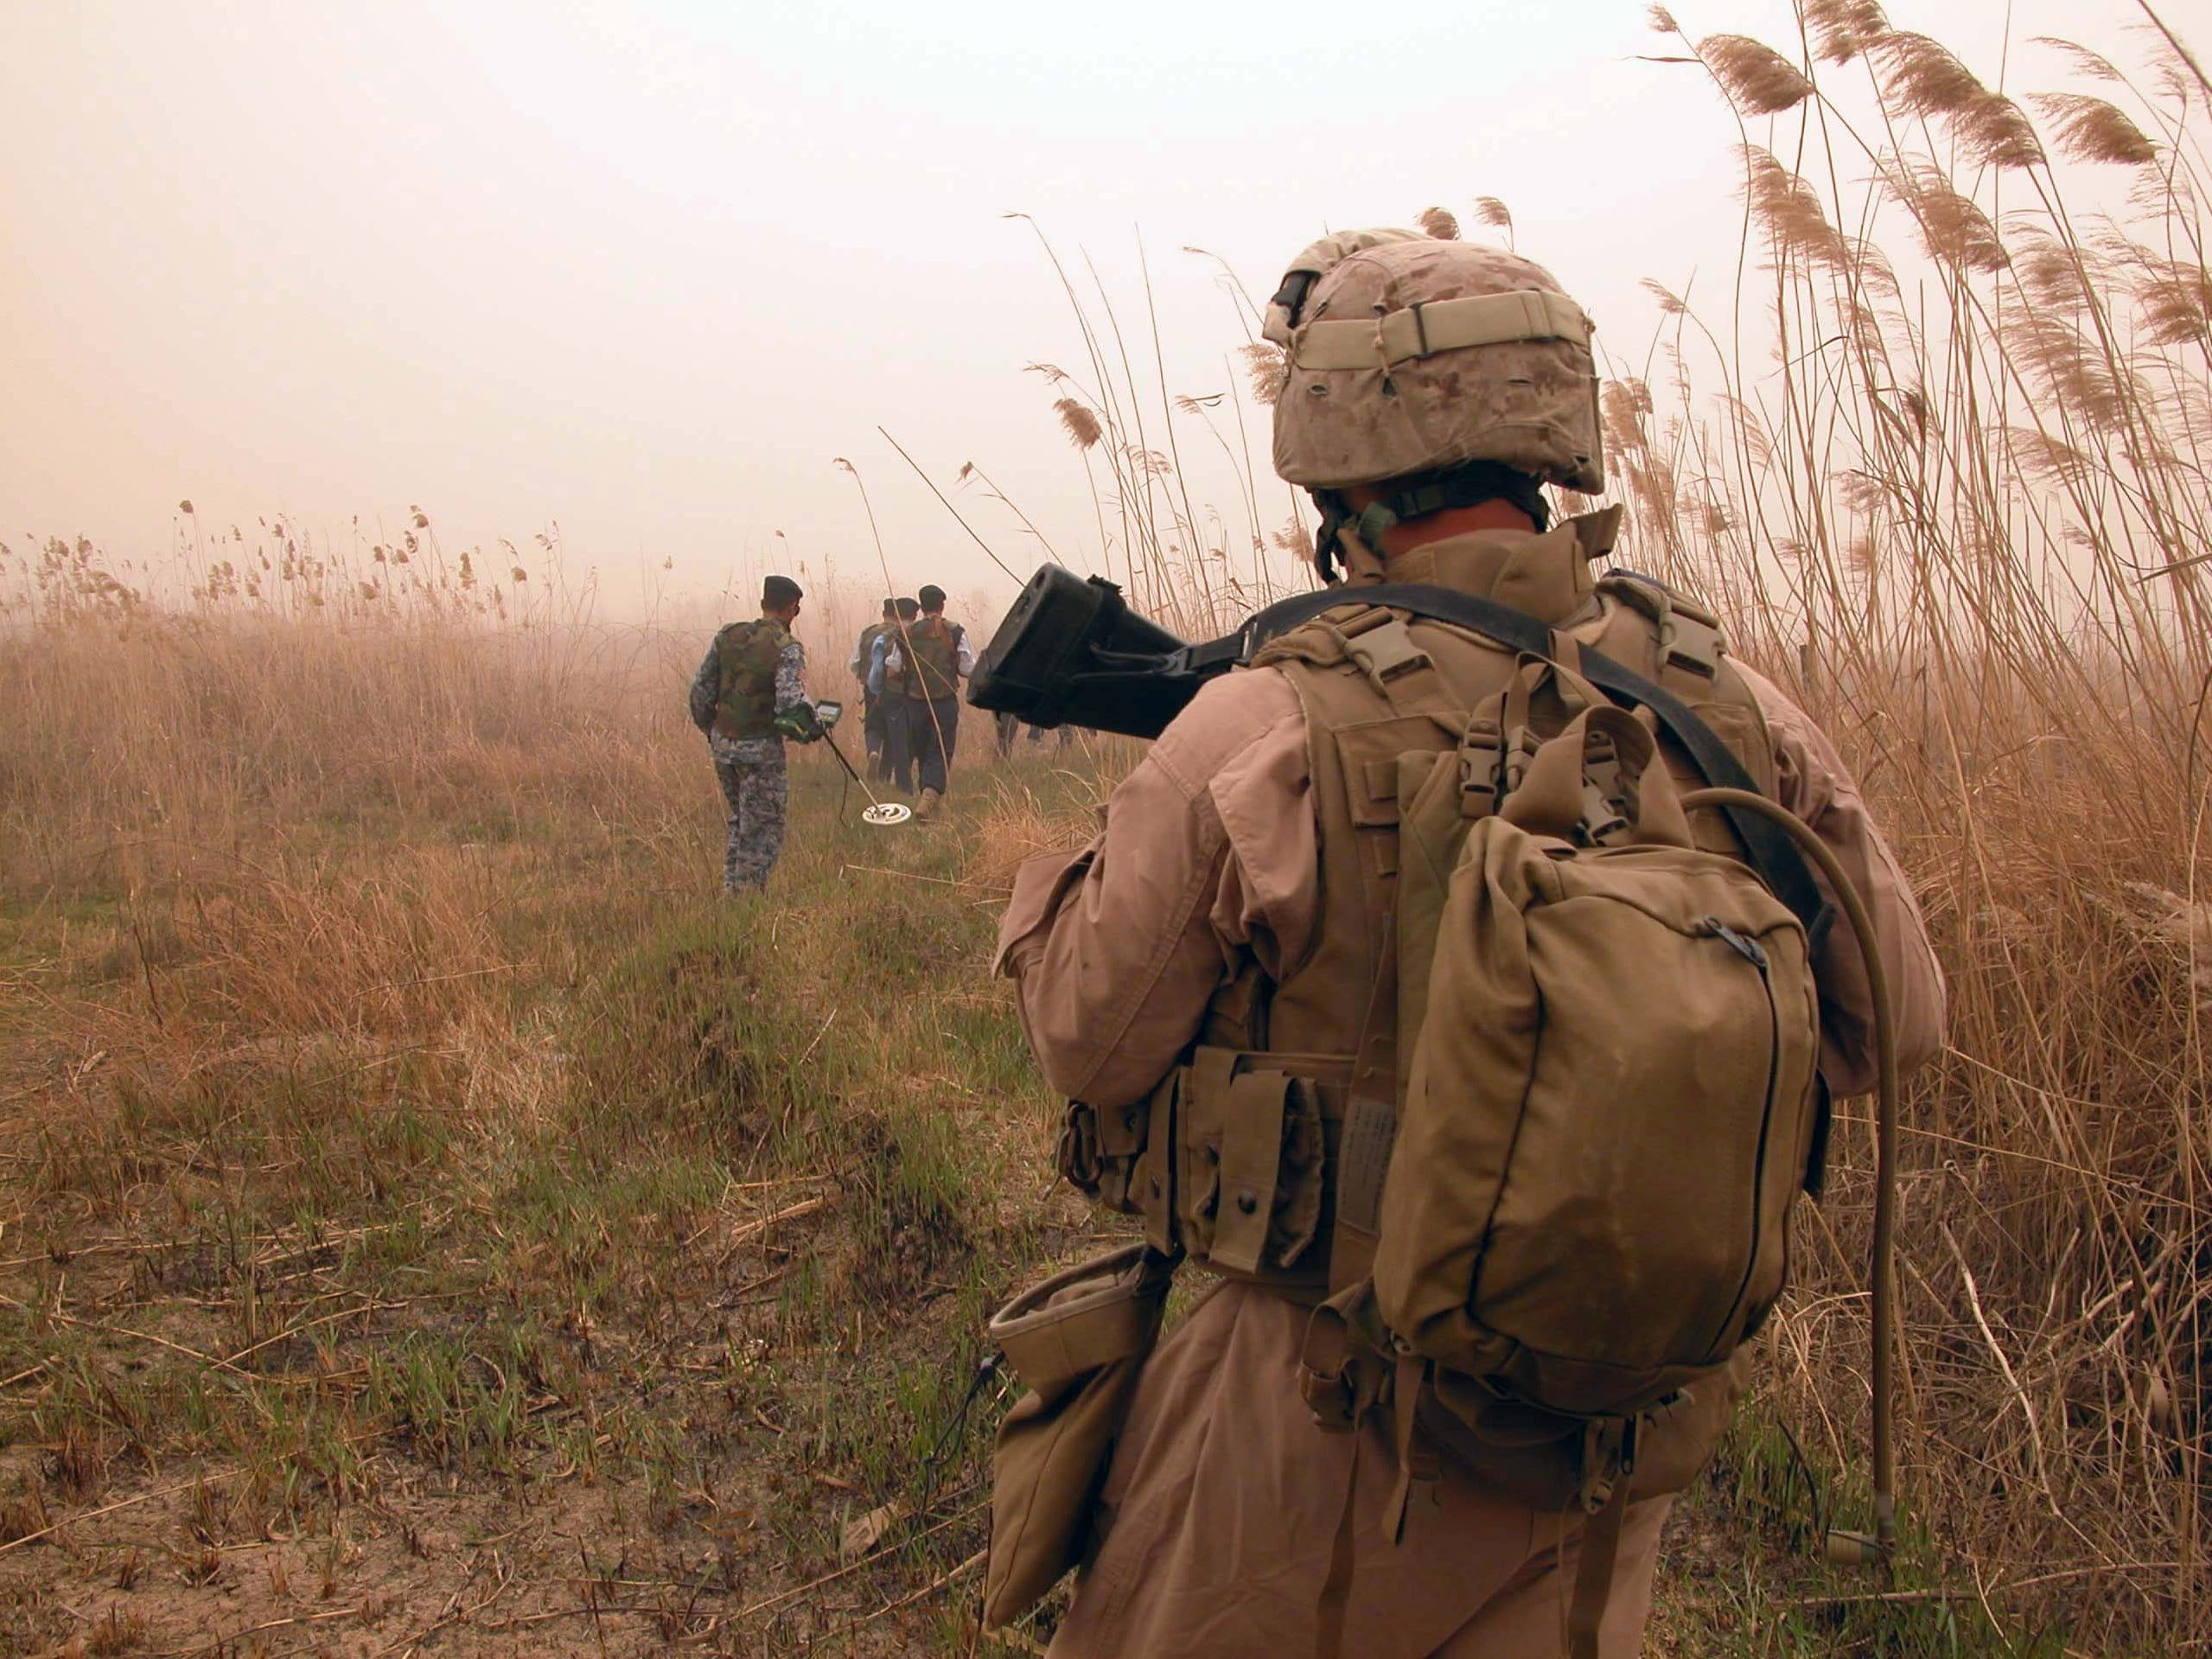 Cpl. Jose Gonzalez, a carpenter from Kenosha, walks behind Iraqi police officers searching for bombs and weapons during a foot patrol near the Euphrates River in Anbar Province. Gonzalez is a member of Fox Co., 2nd Battalion, 24th Marines.